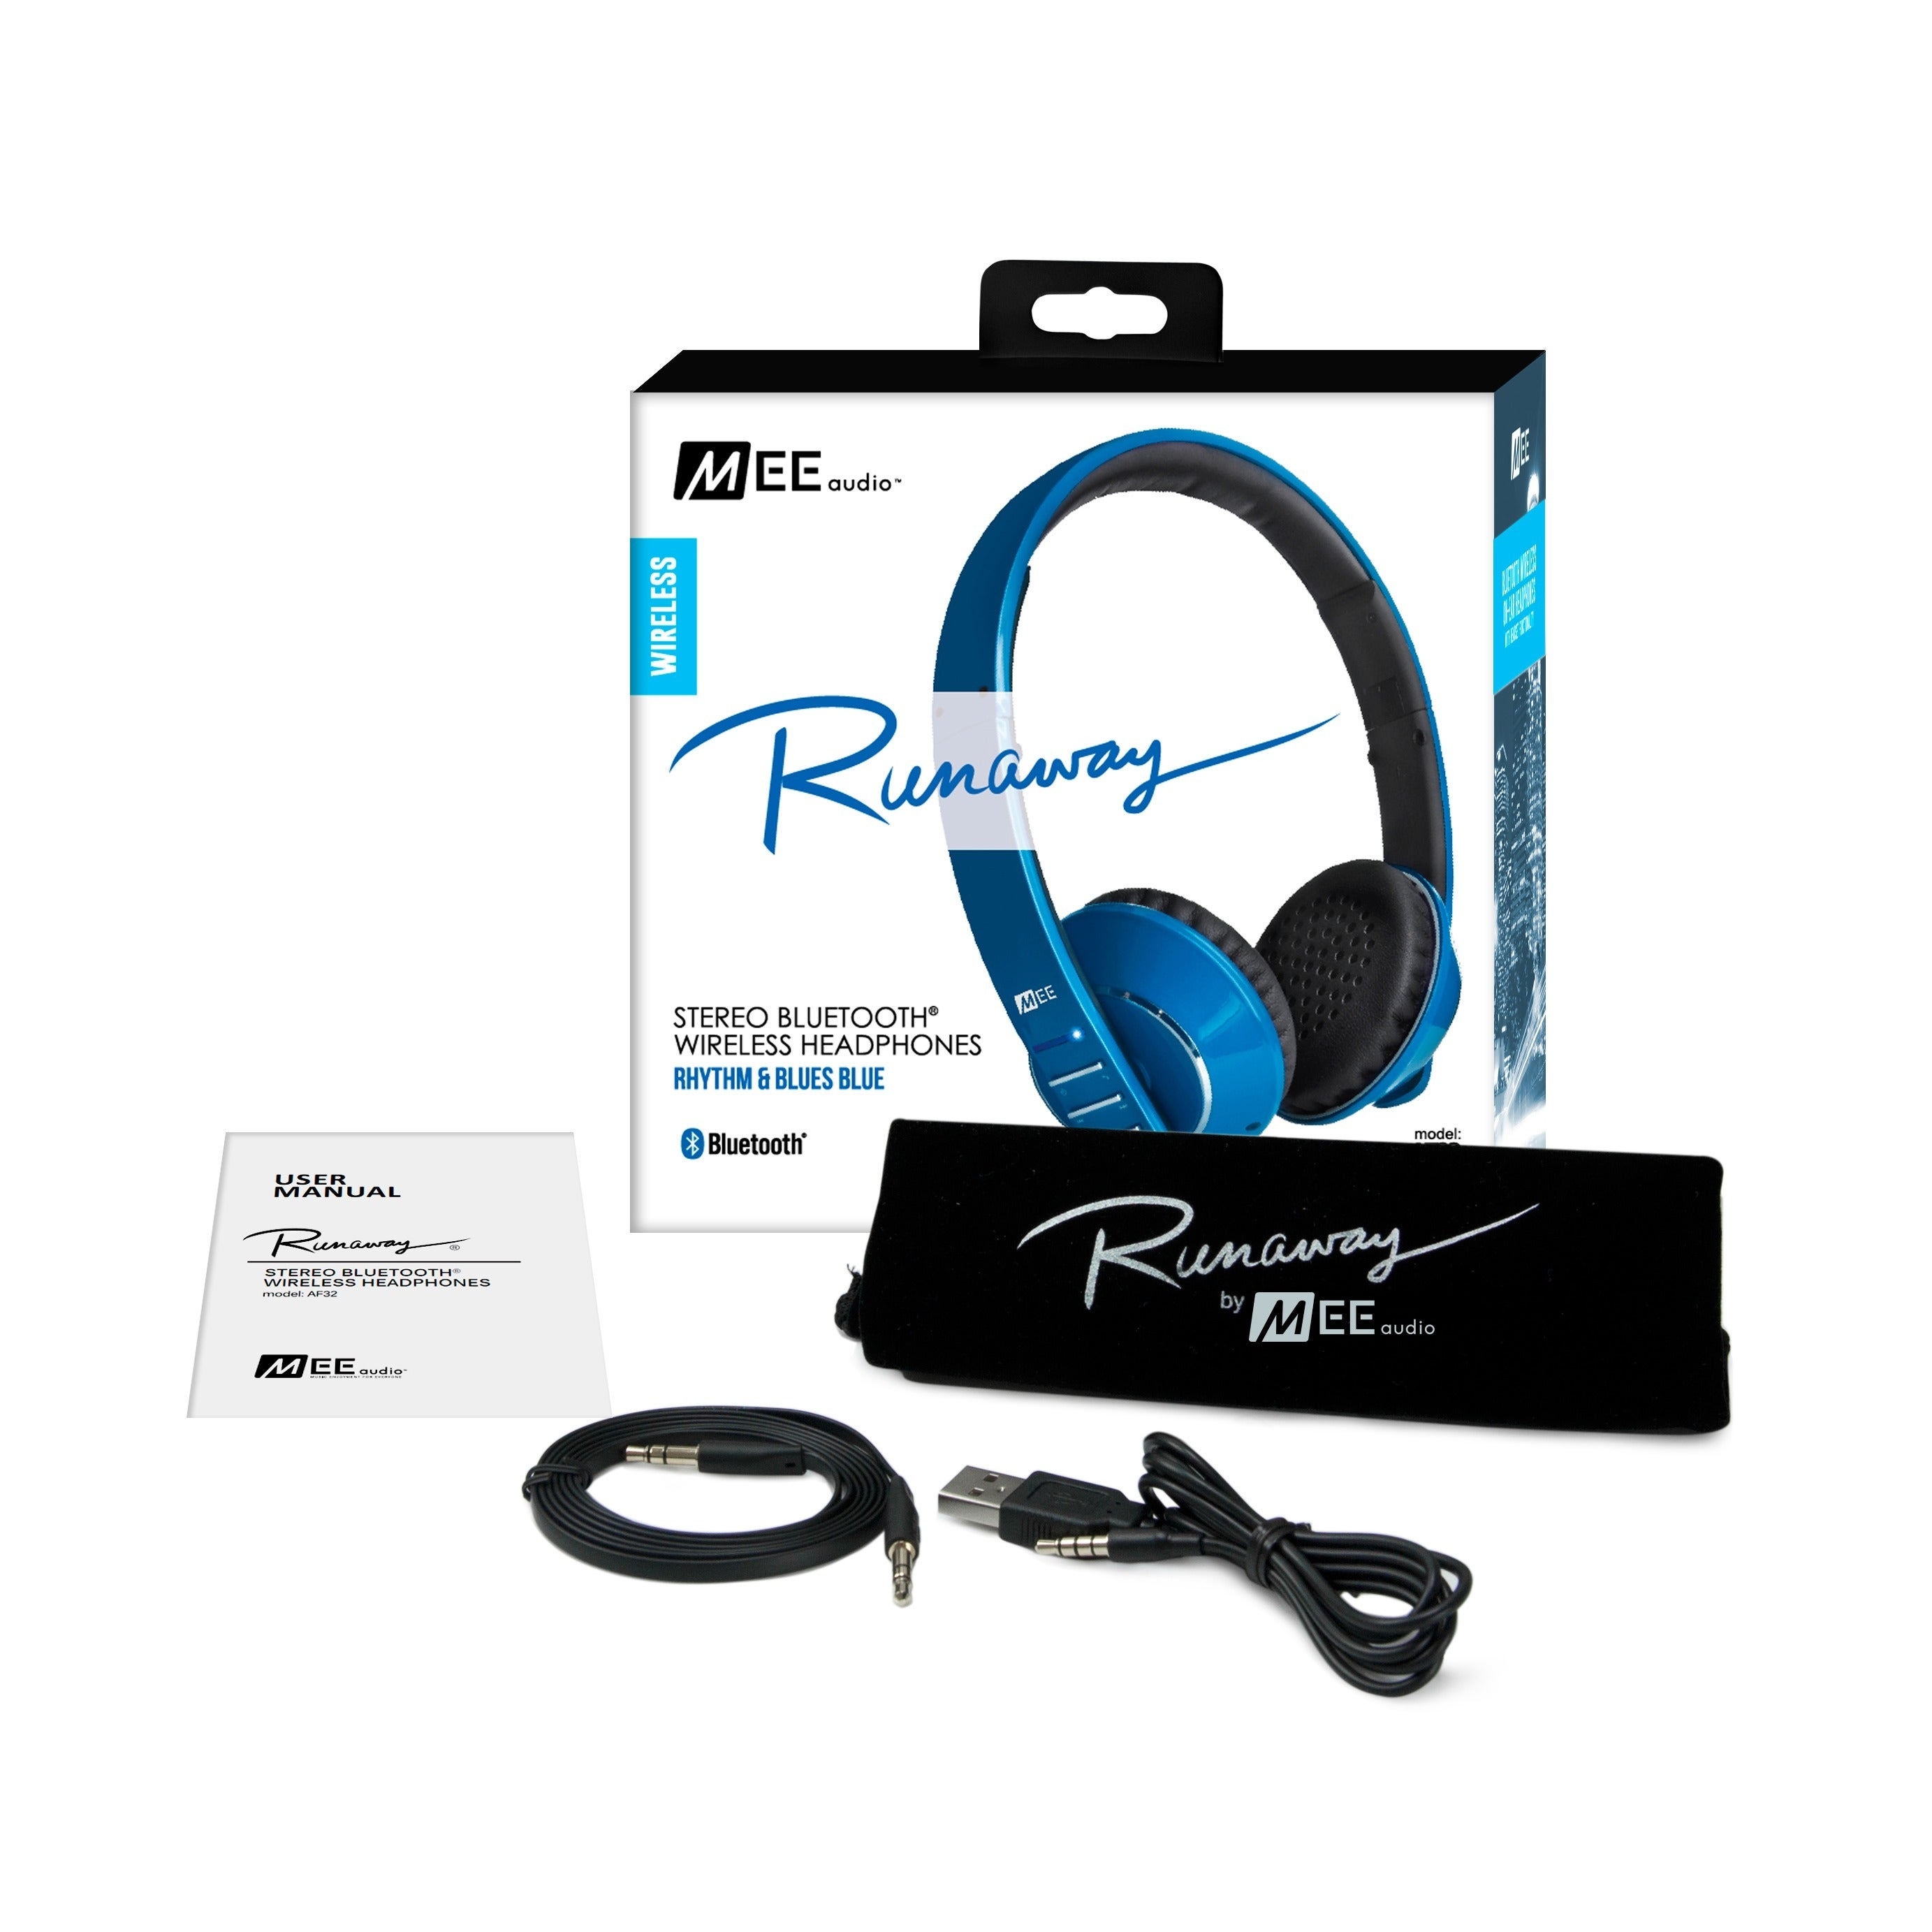 MEE audio Runaway AF32 Stereo Bluetooth Headphones